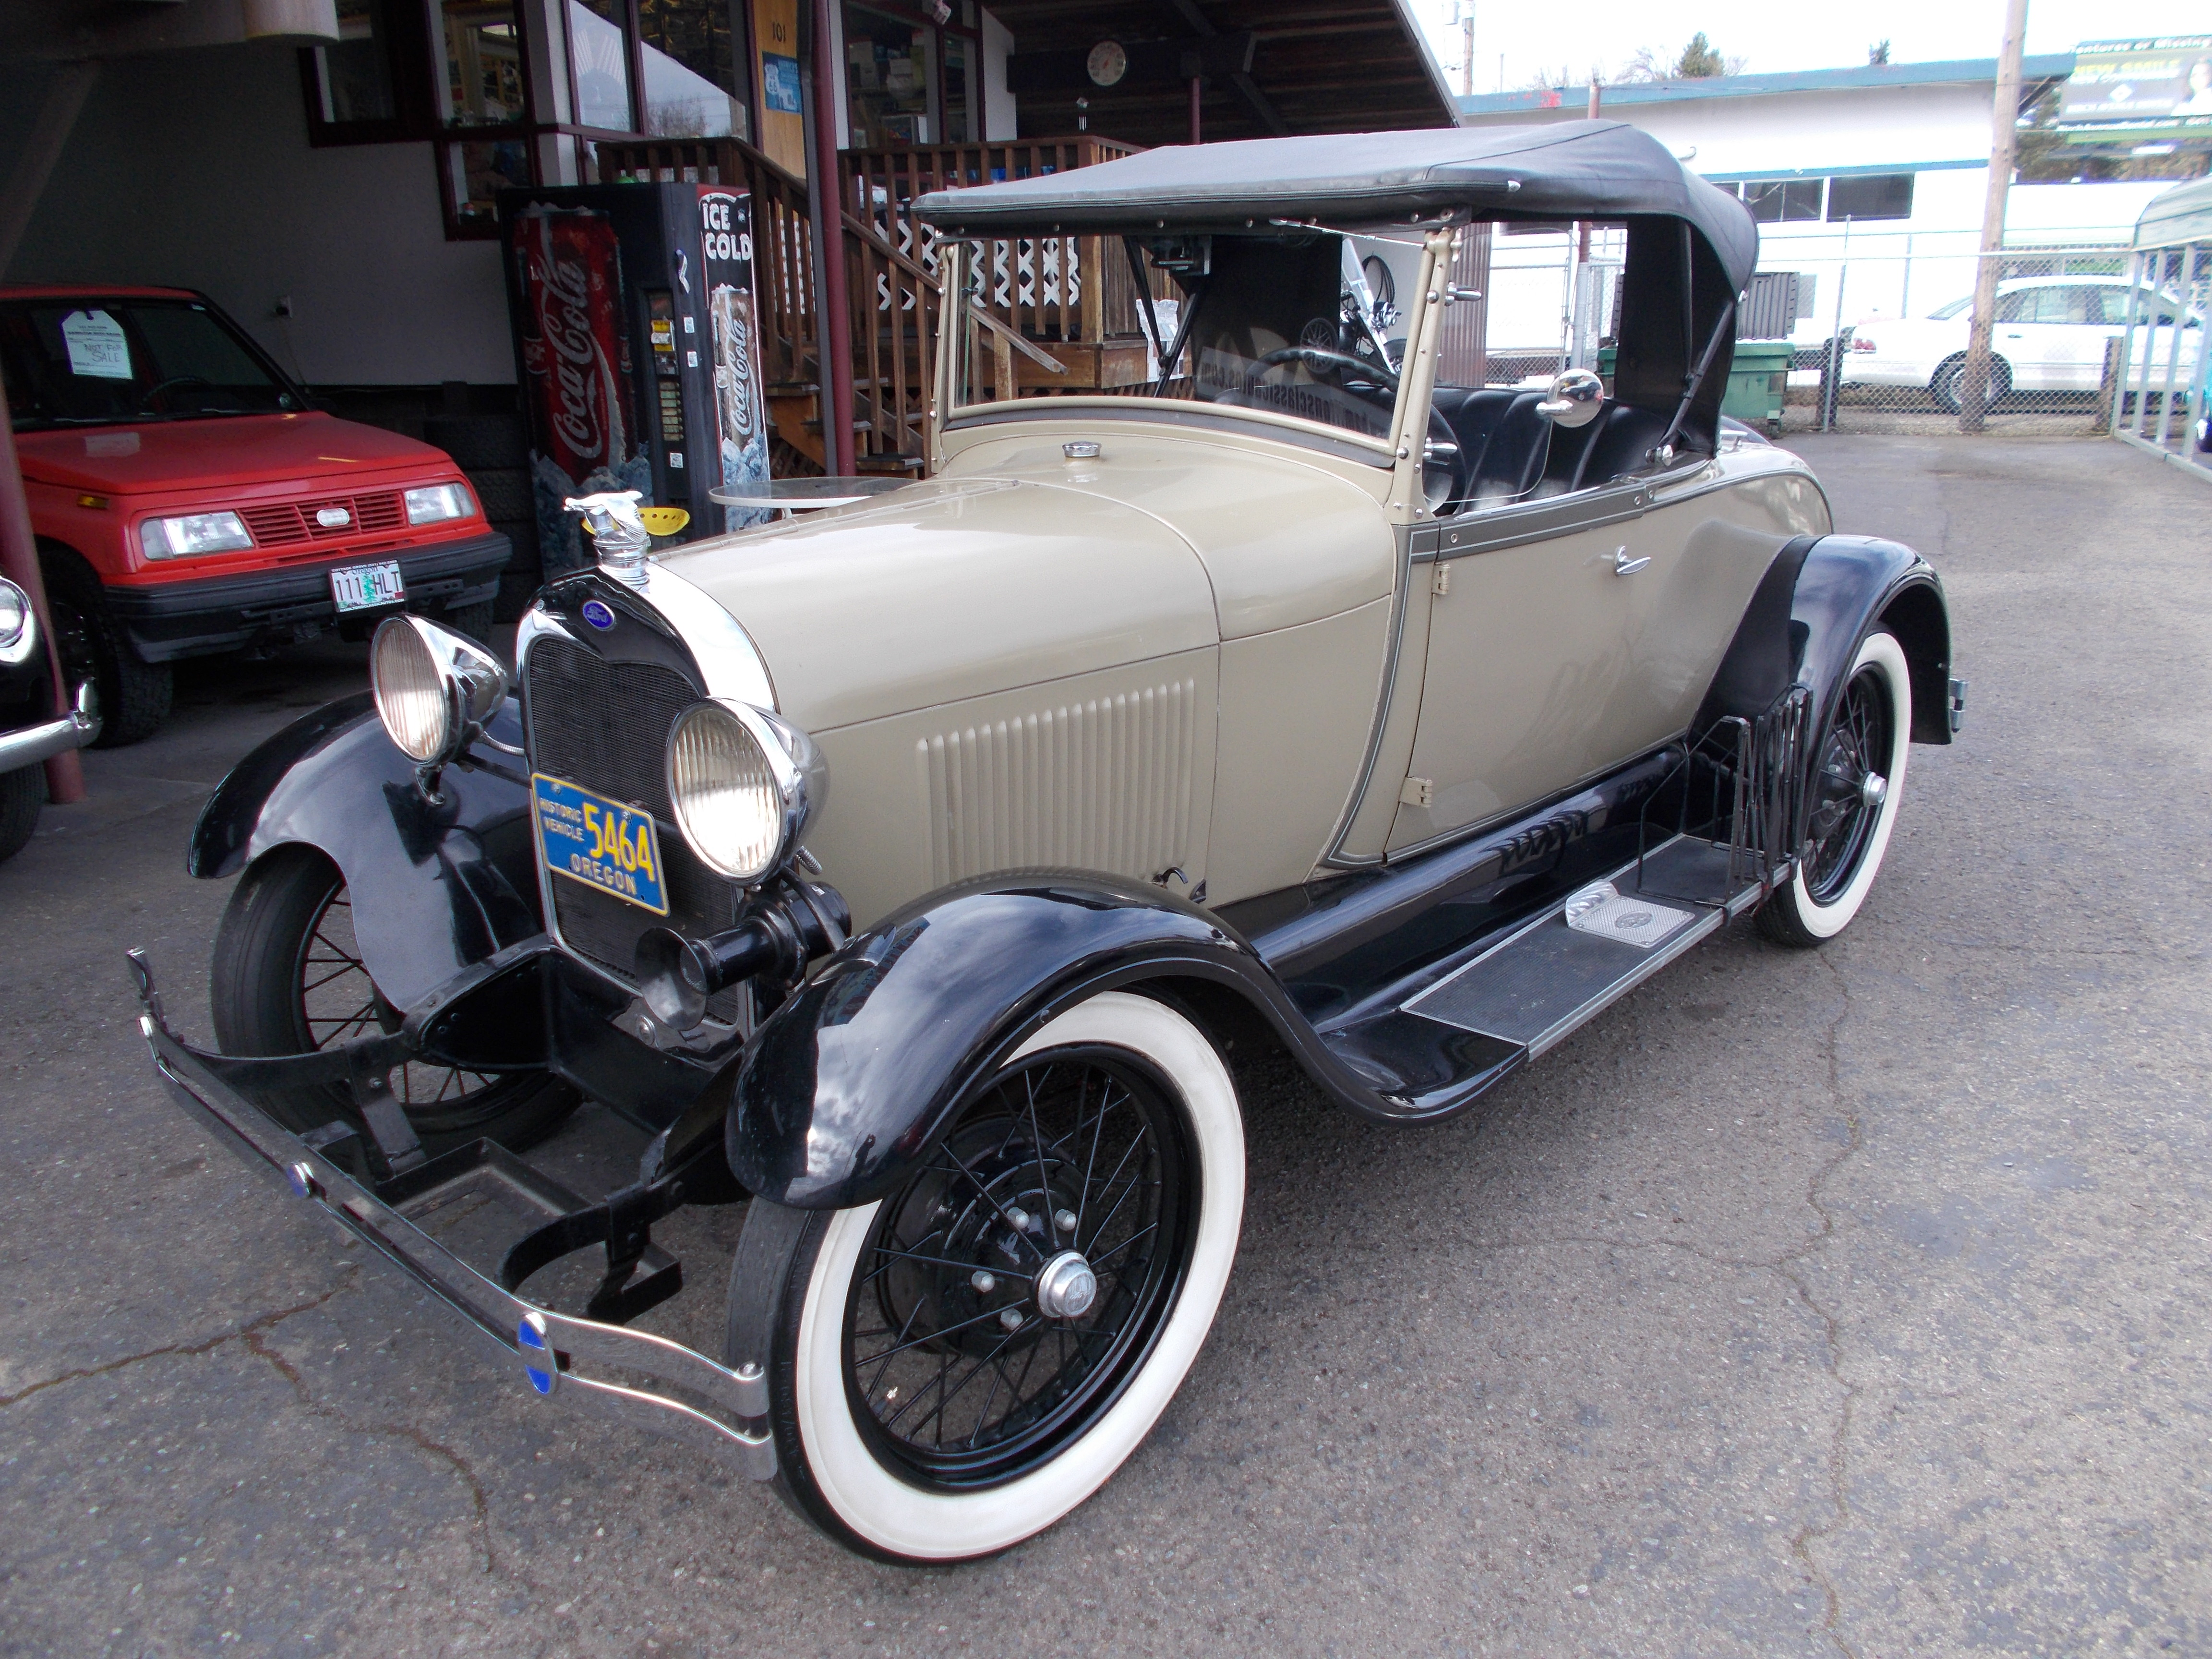 Hamilton Auto Sales 1929 Ford Model A Wiring Harness 1928 Roadster Rumble Seat All Steel Car This Is Nice Older Restoration Of With The Original Running Gear